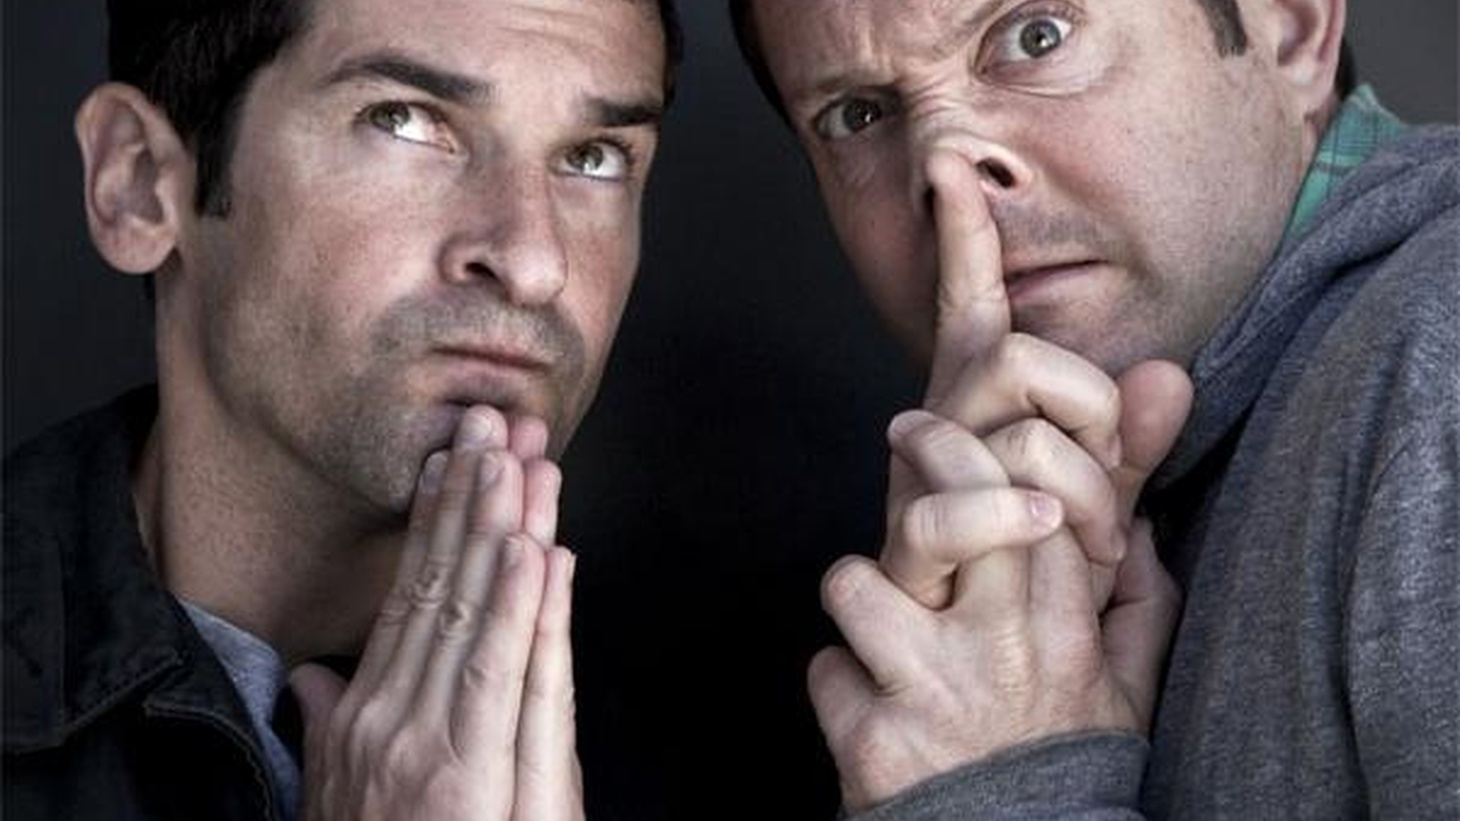 Sketch comedians and screenwriters Thomas Lennon and Robert Ben Garant, authors of Writing Movies for Fun and Profit, on the very practical secrets to their success.